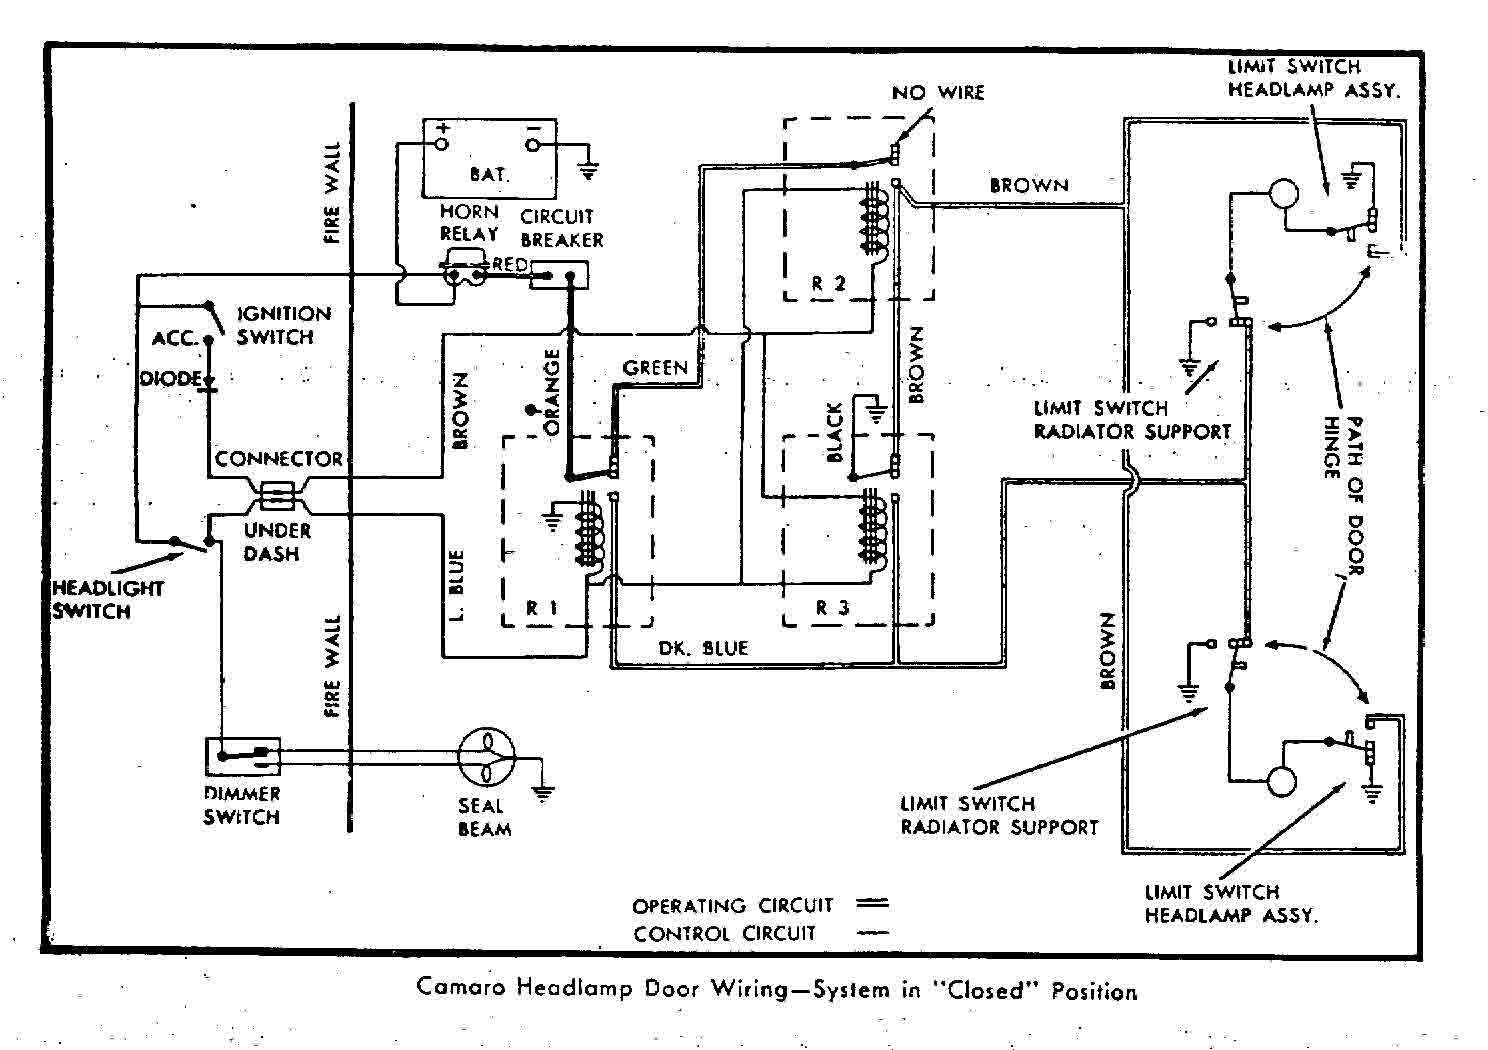 1968 Camaro Dash Wiring Diagram Simple Wiring Diagram 68 Camaro Fuse Box  Diagram 1968 Camaro Fuse Box Wiring